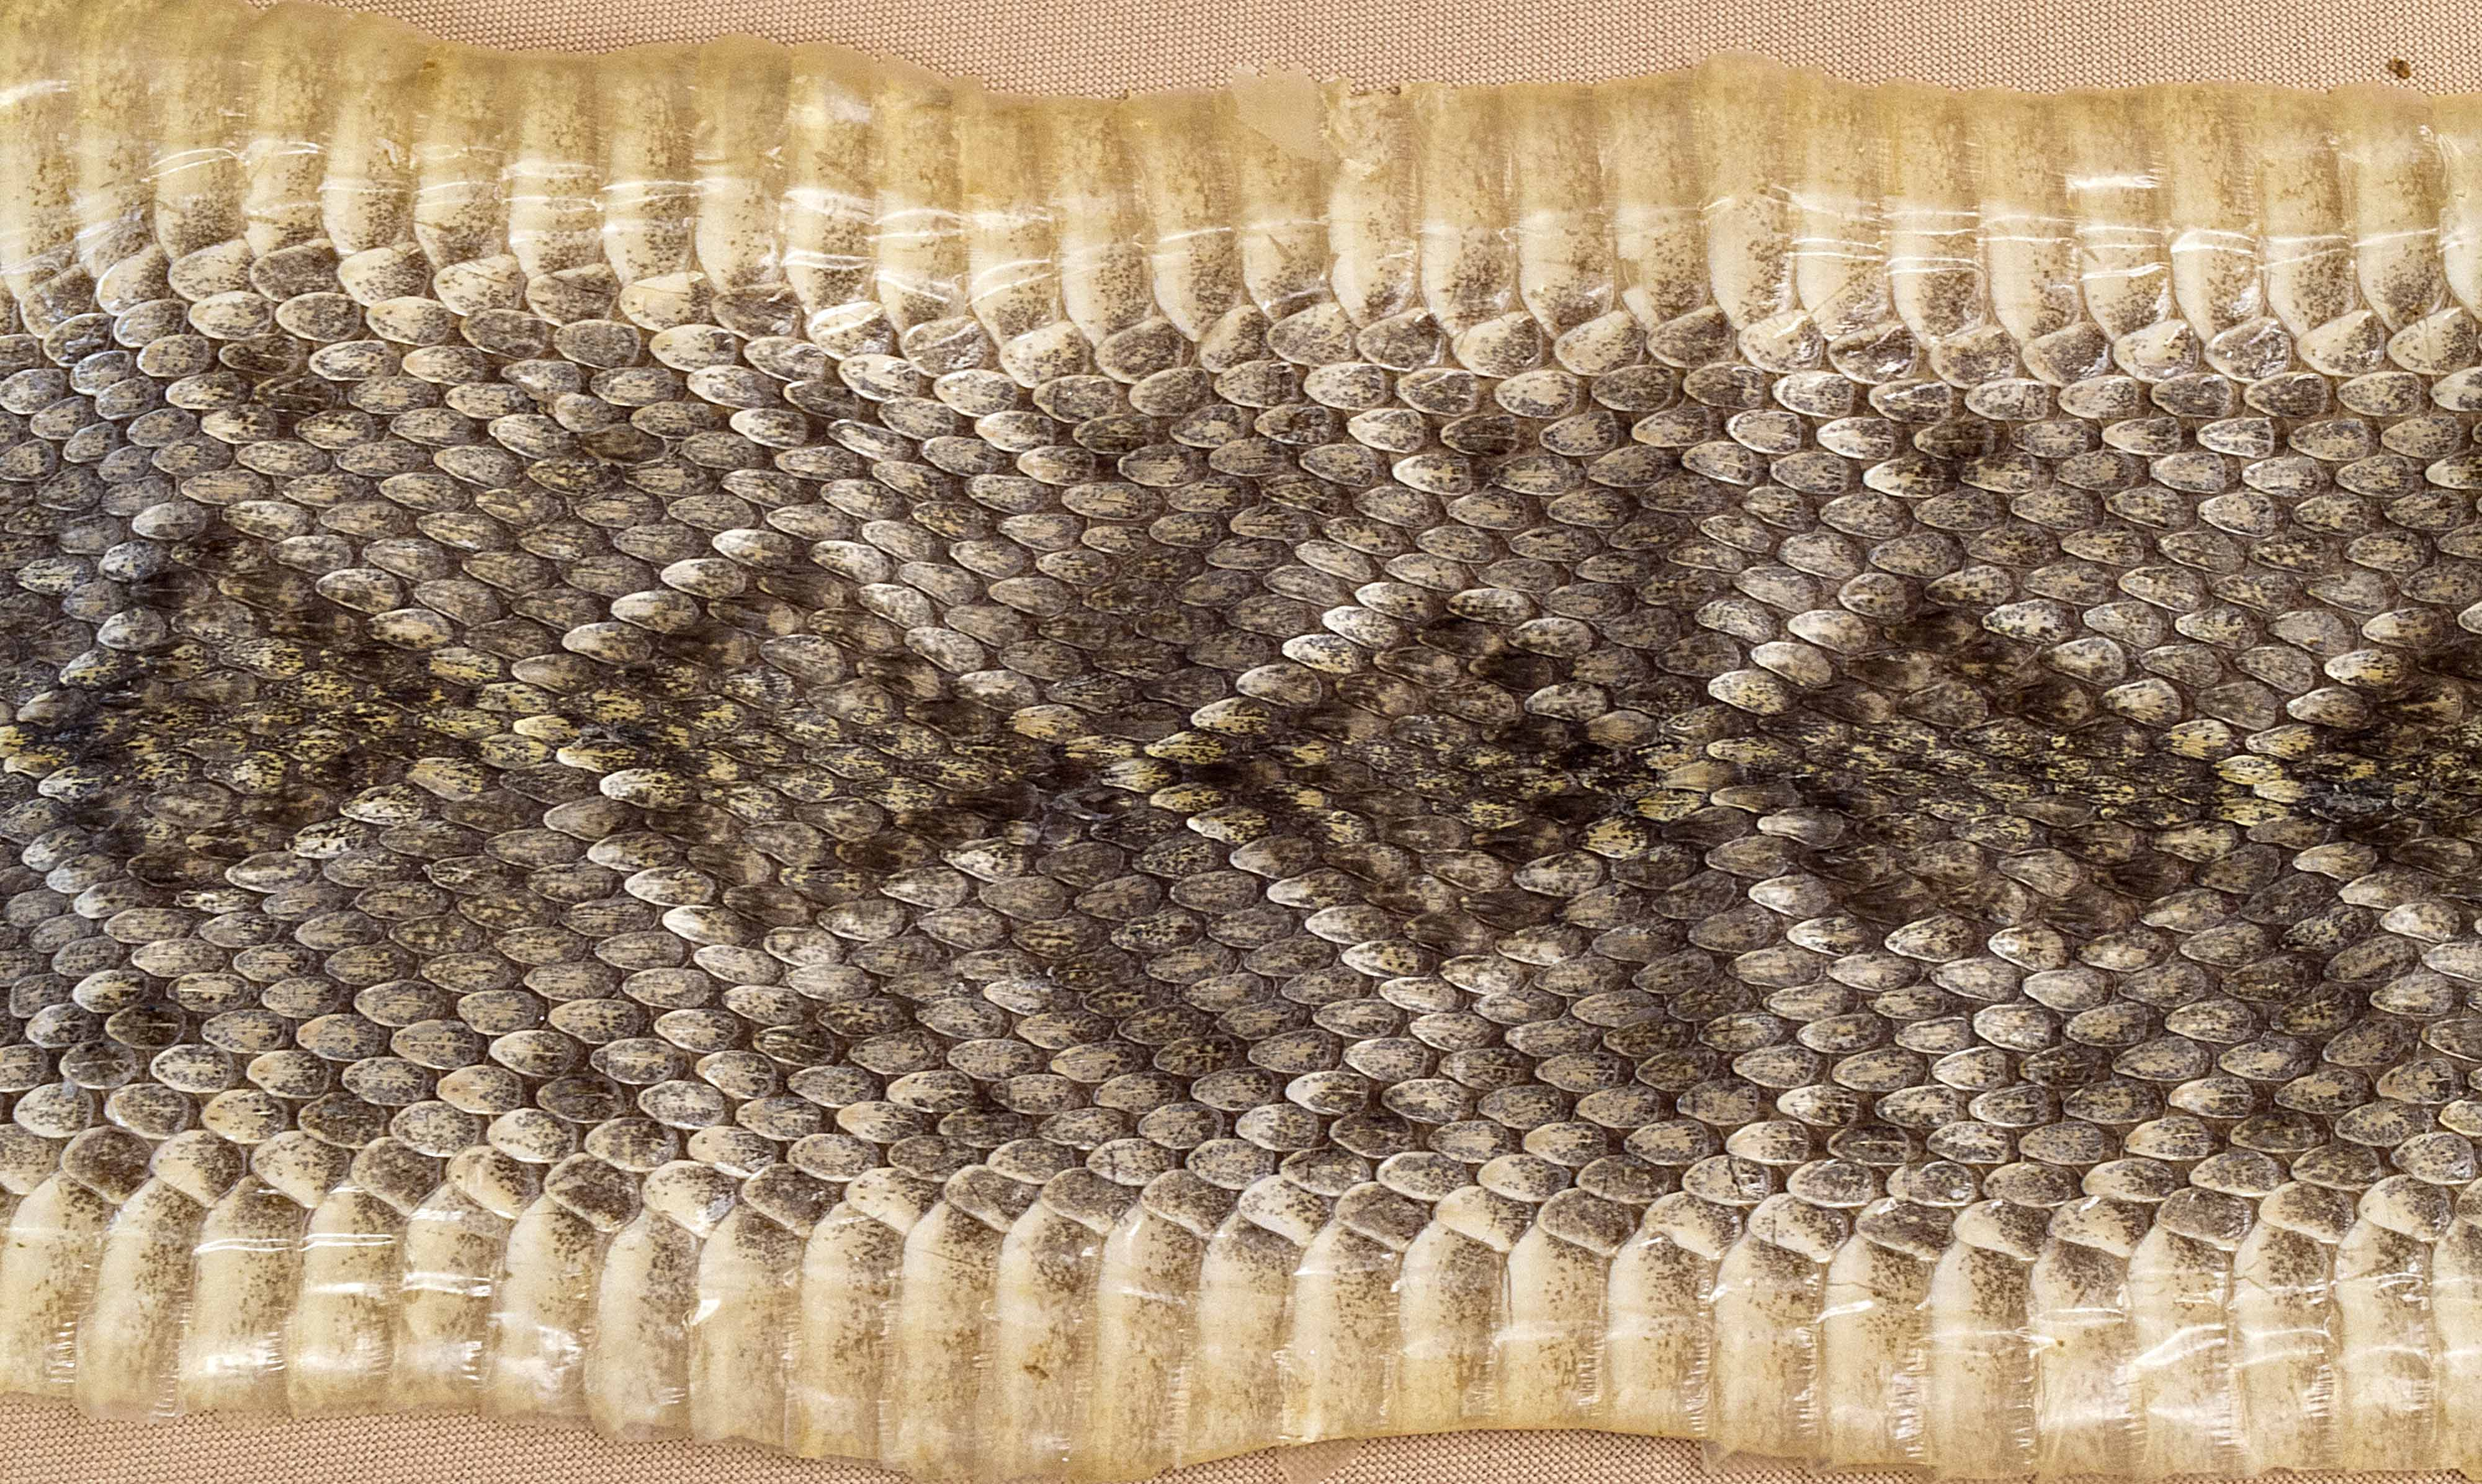 how to take care of snakeskin